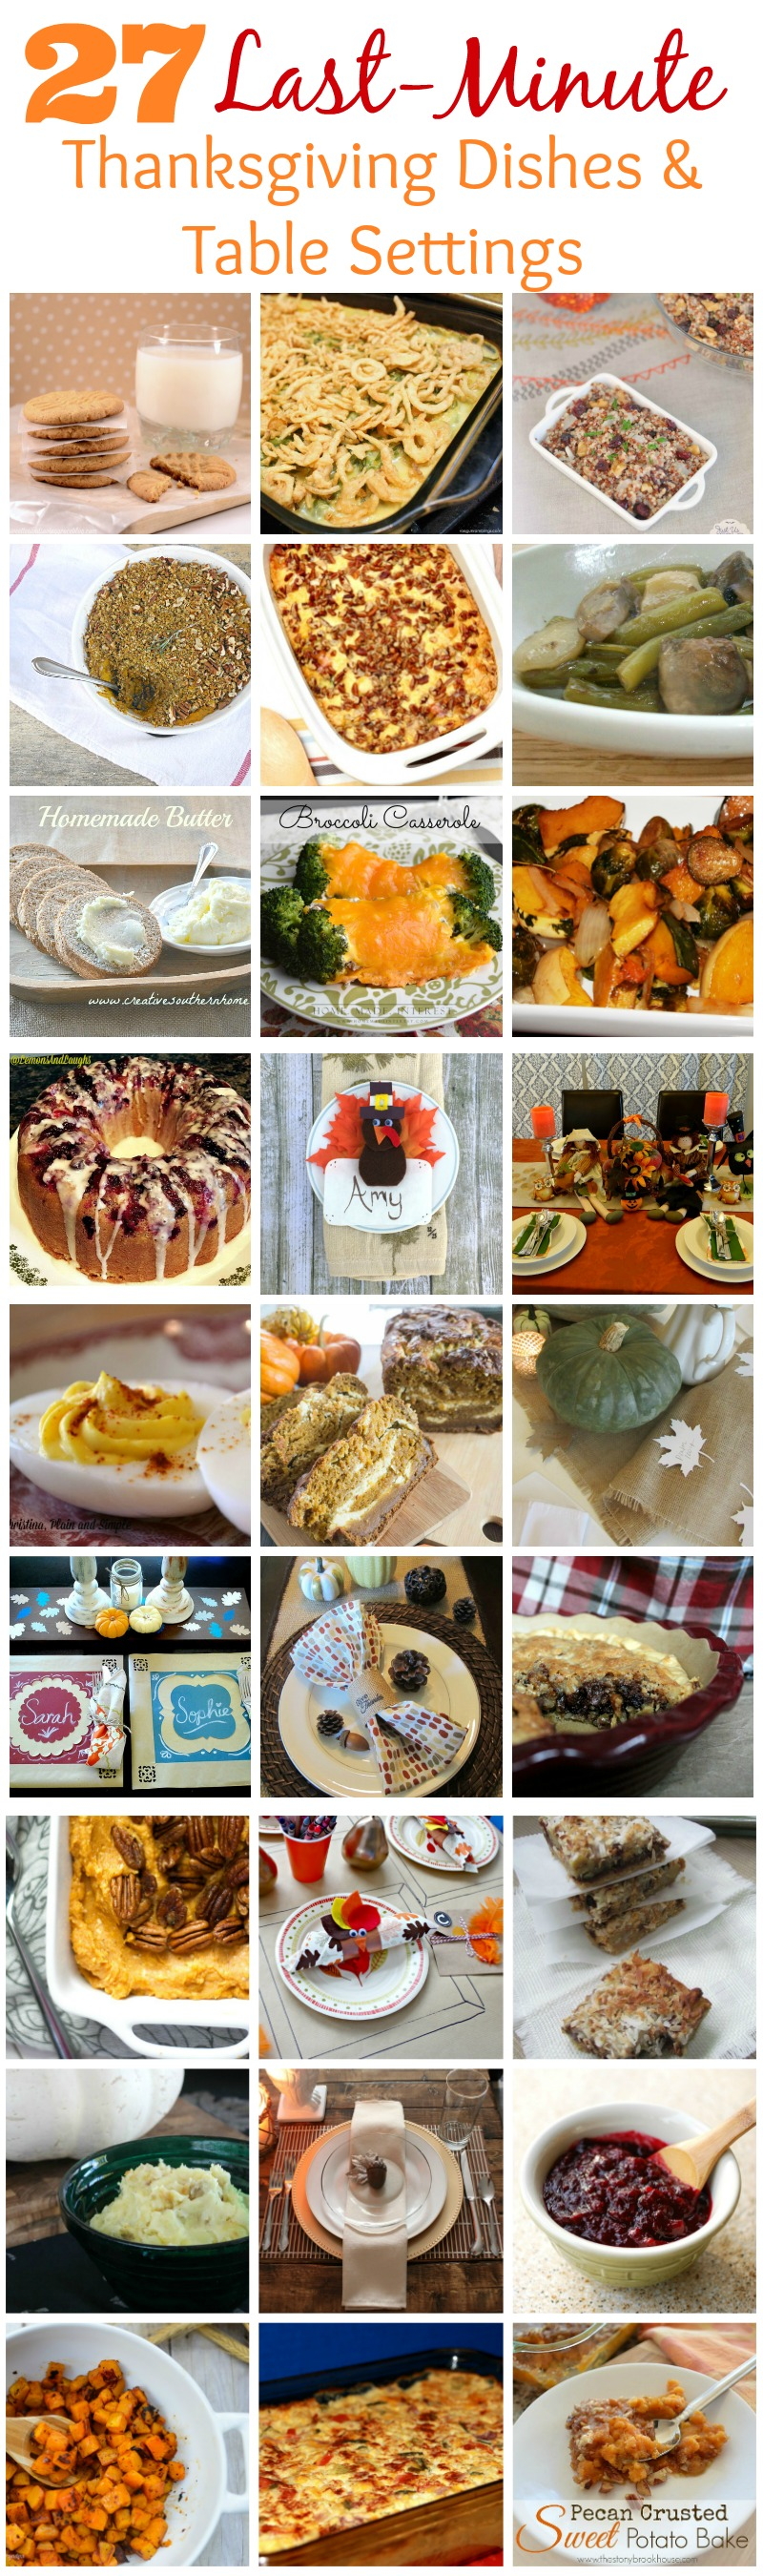 27 Last Minute Thanksgiving Dishes & Table Settings  |  Sweet Tea & Saving Grace